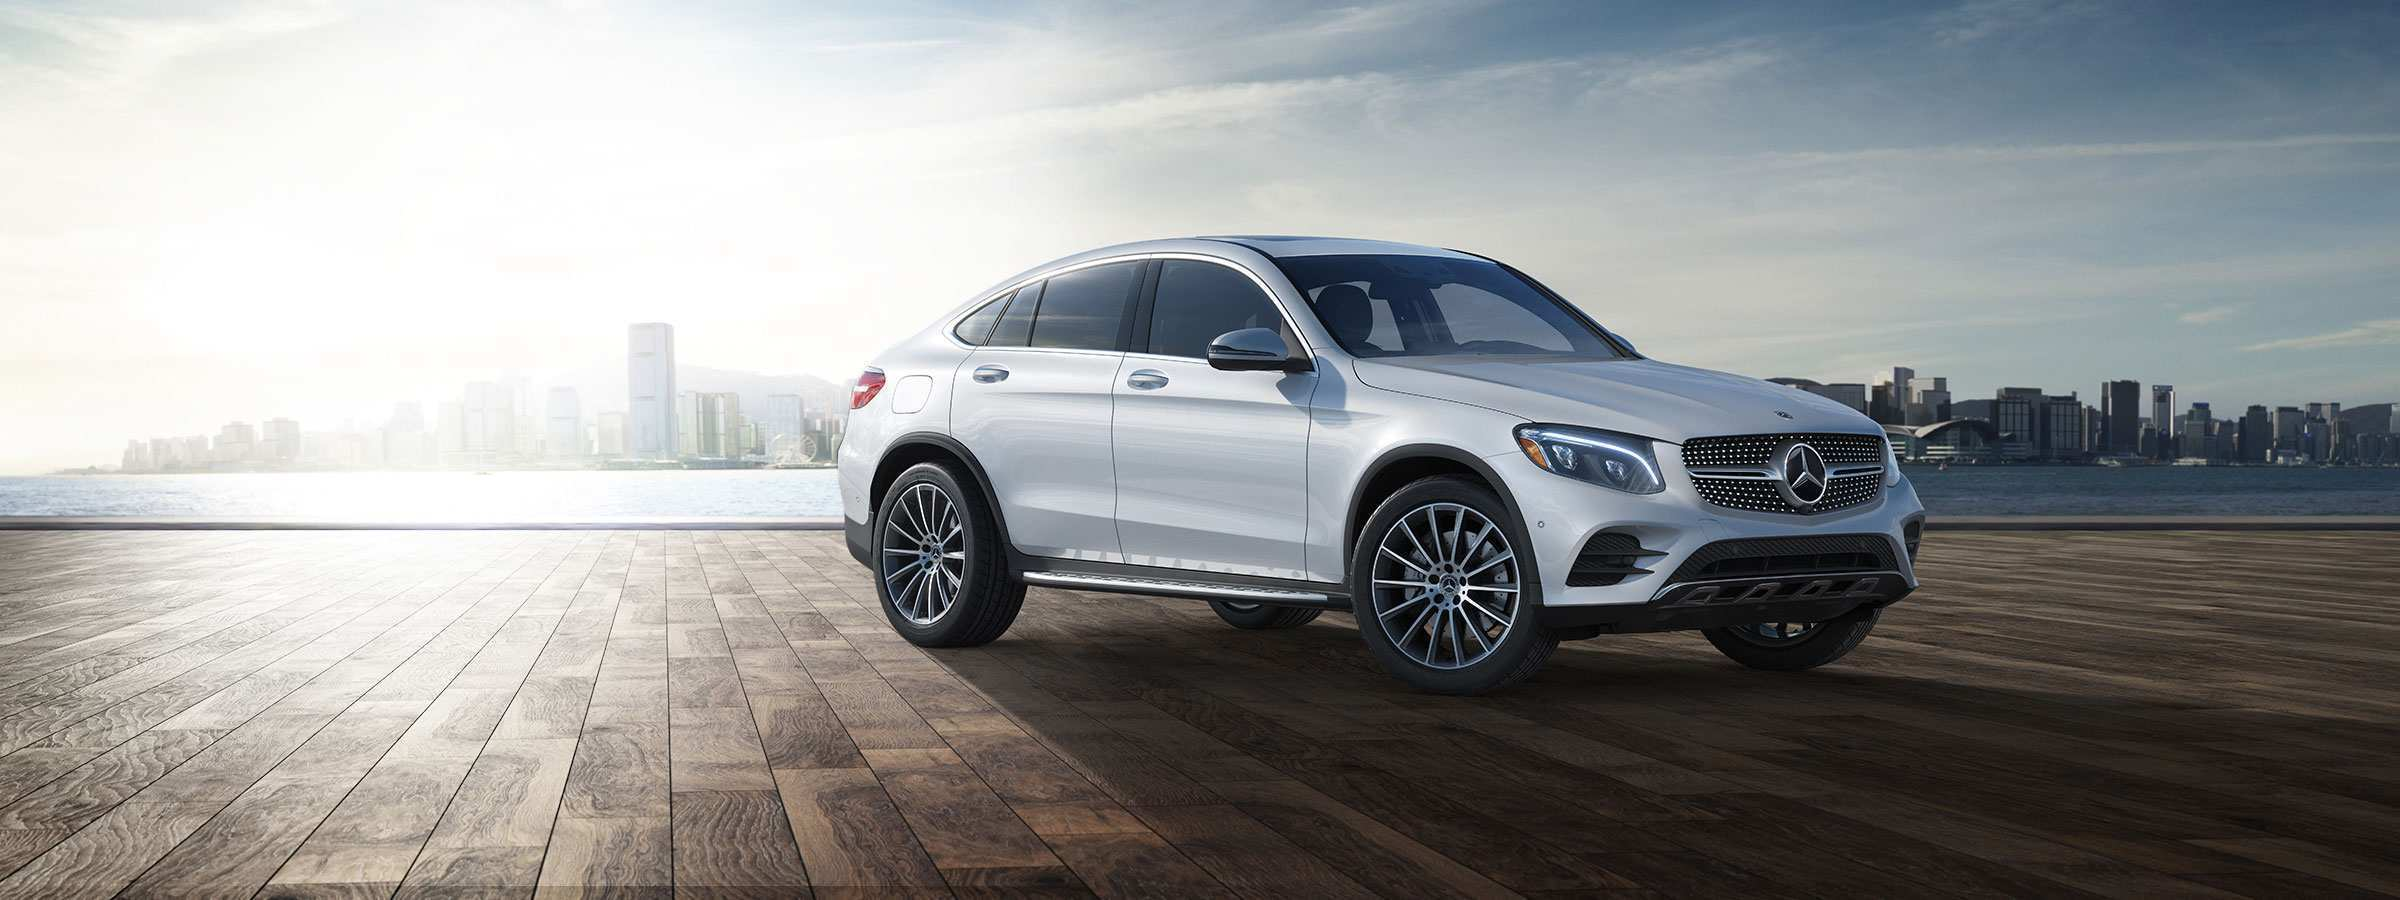 82 All New New 2019 Mercedes Delivery Date Price Interior with New 2019 Mercedes Delivery Date Price